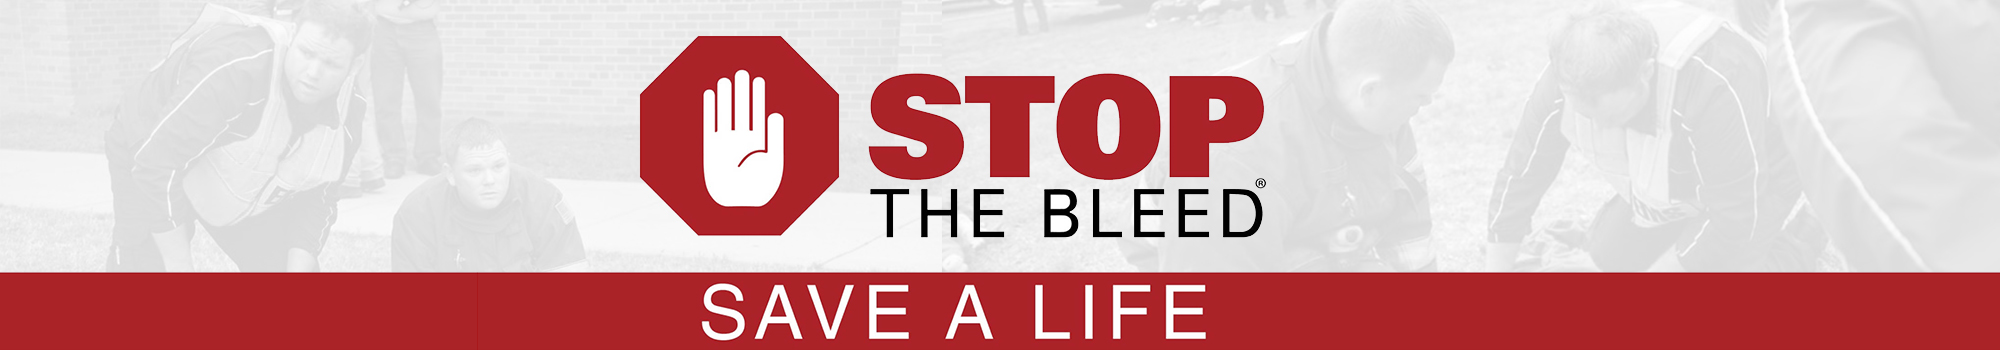 Stop The Bleed Save A Life logo